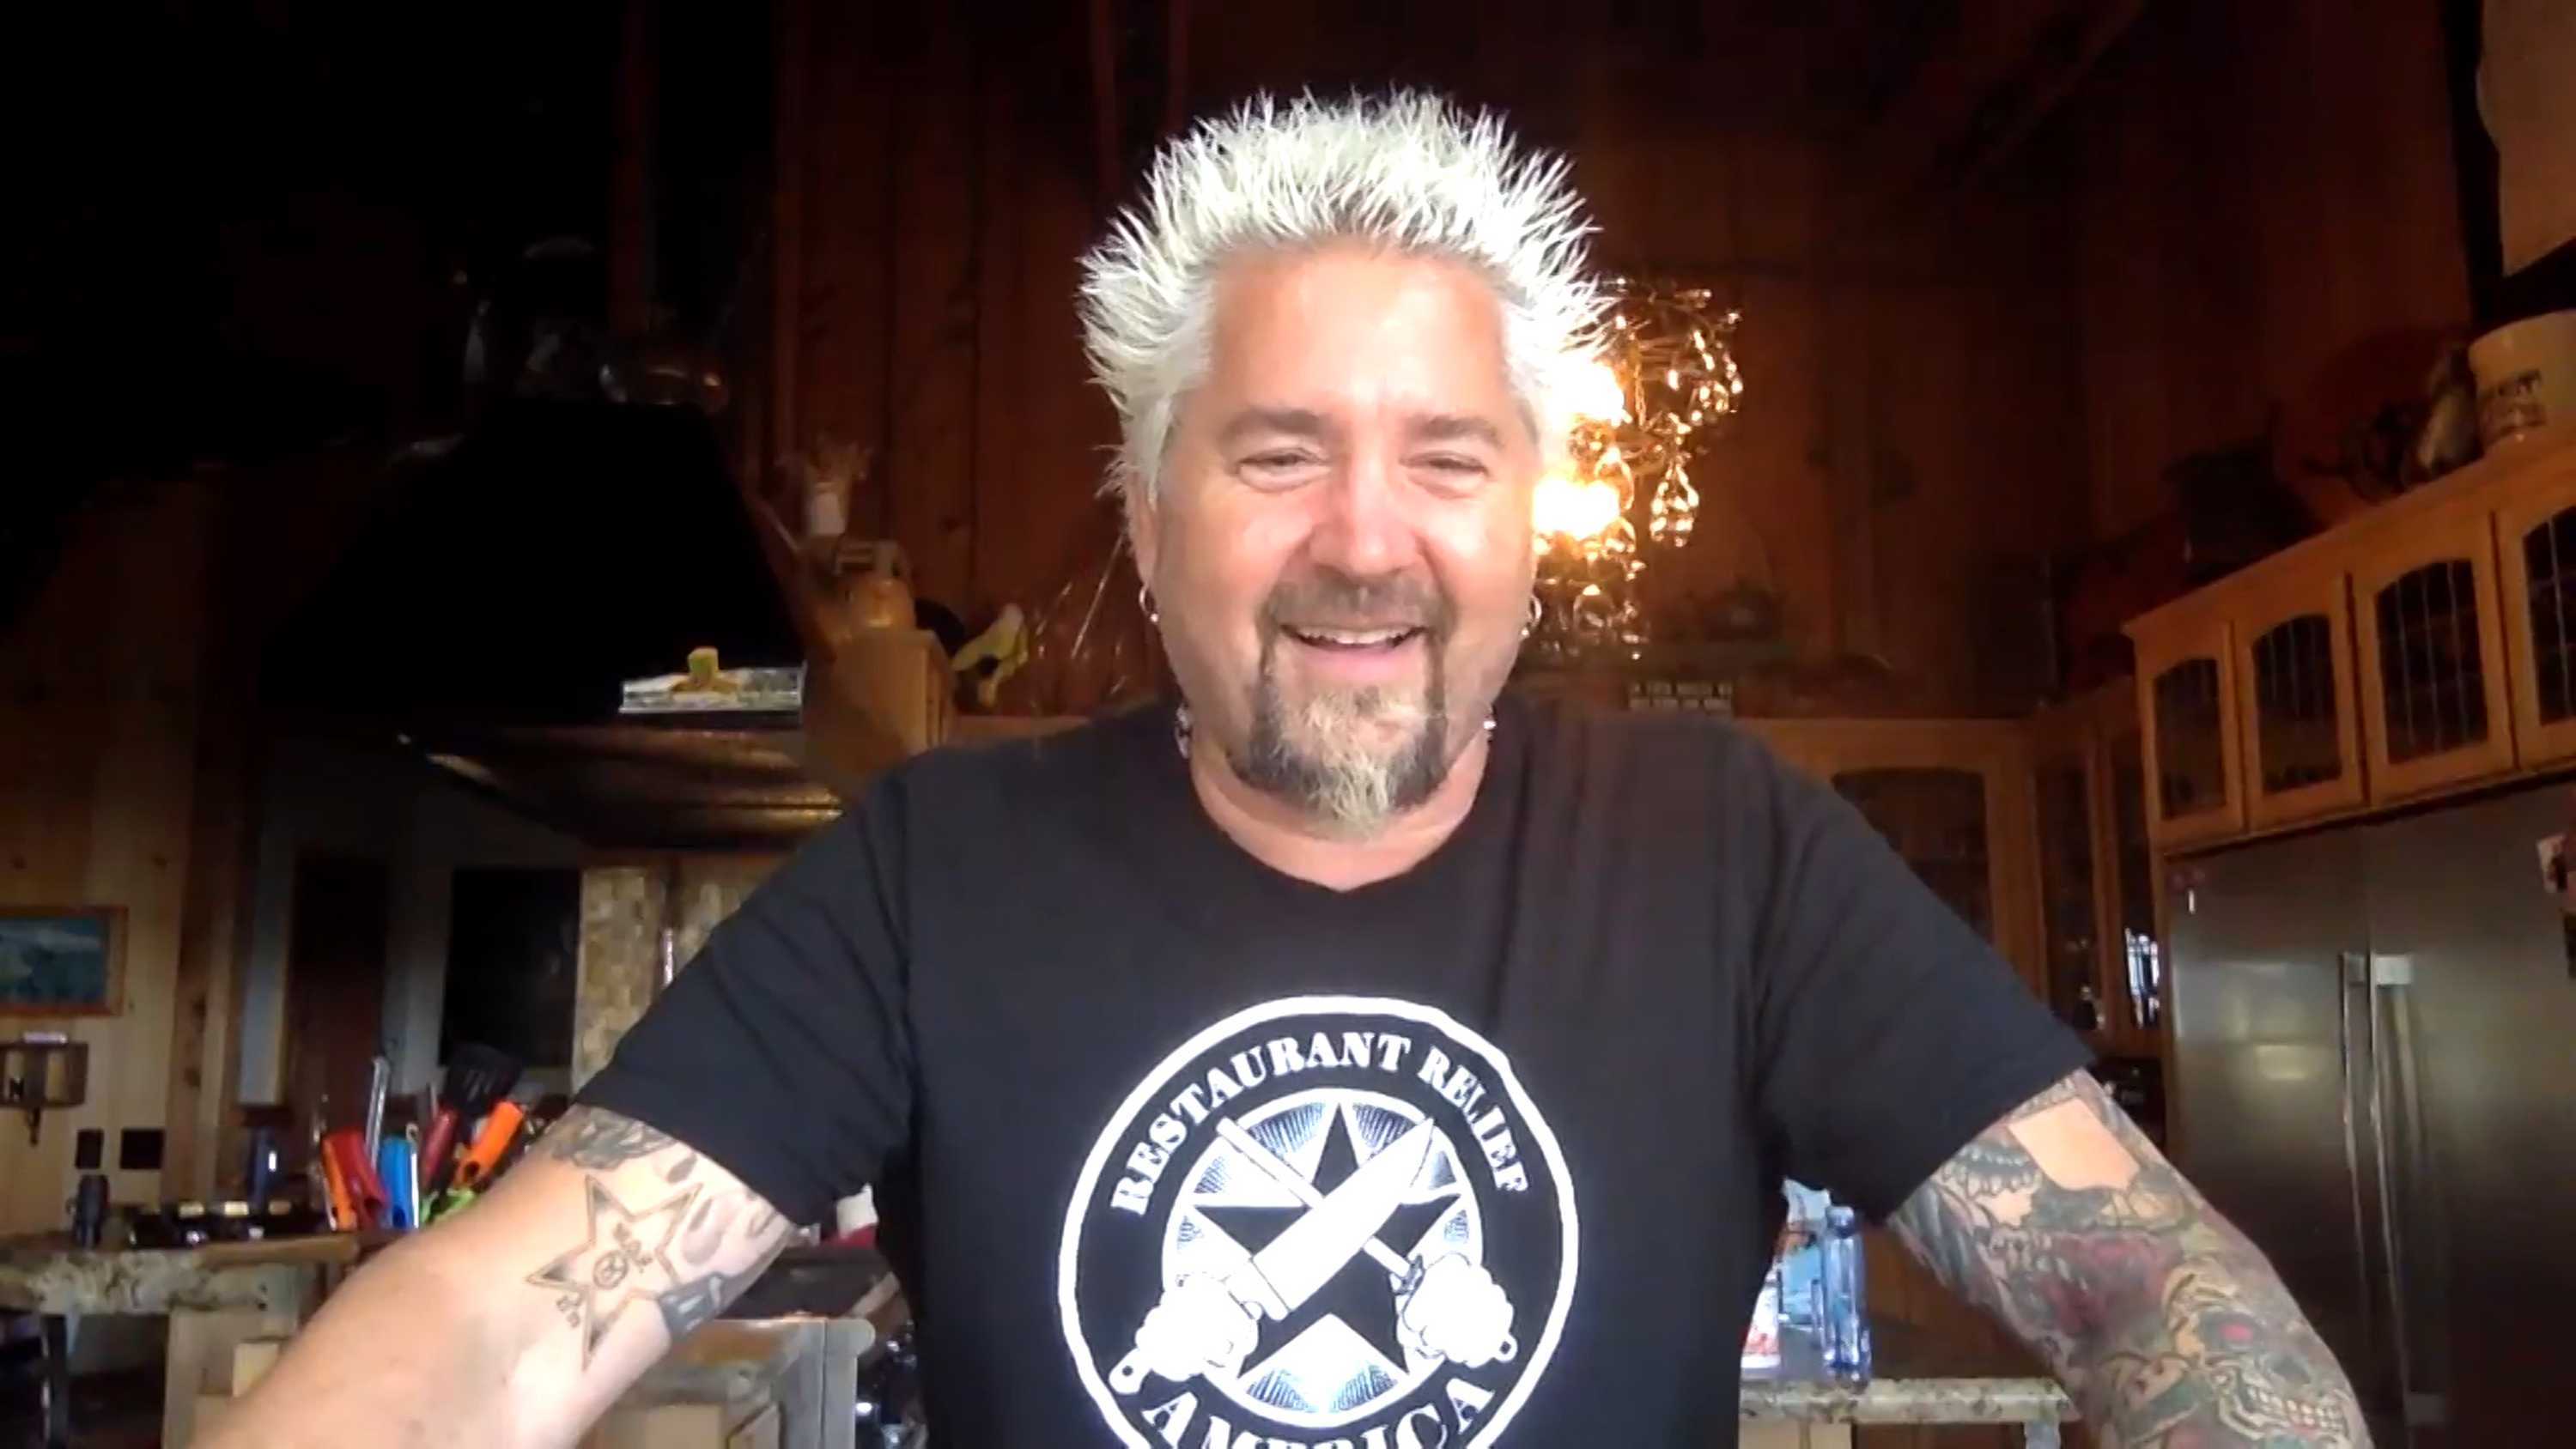 Chef Guy Fieri wearing a dark short-sleeve shirt and smiling into the camera